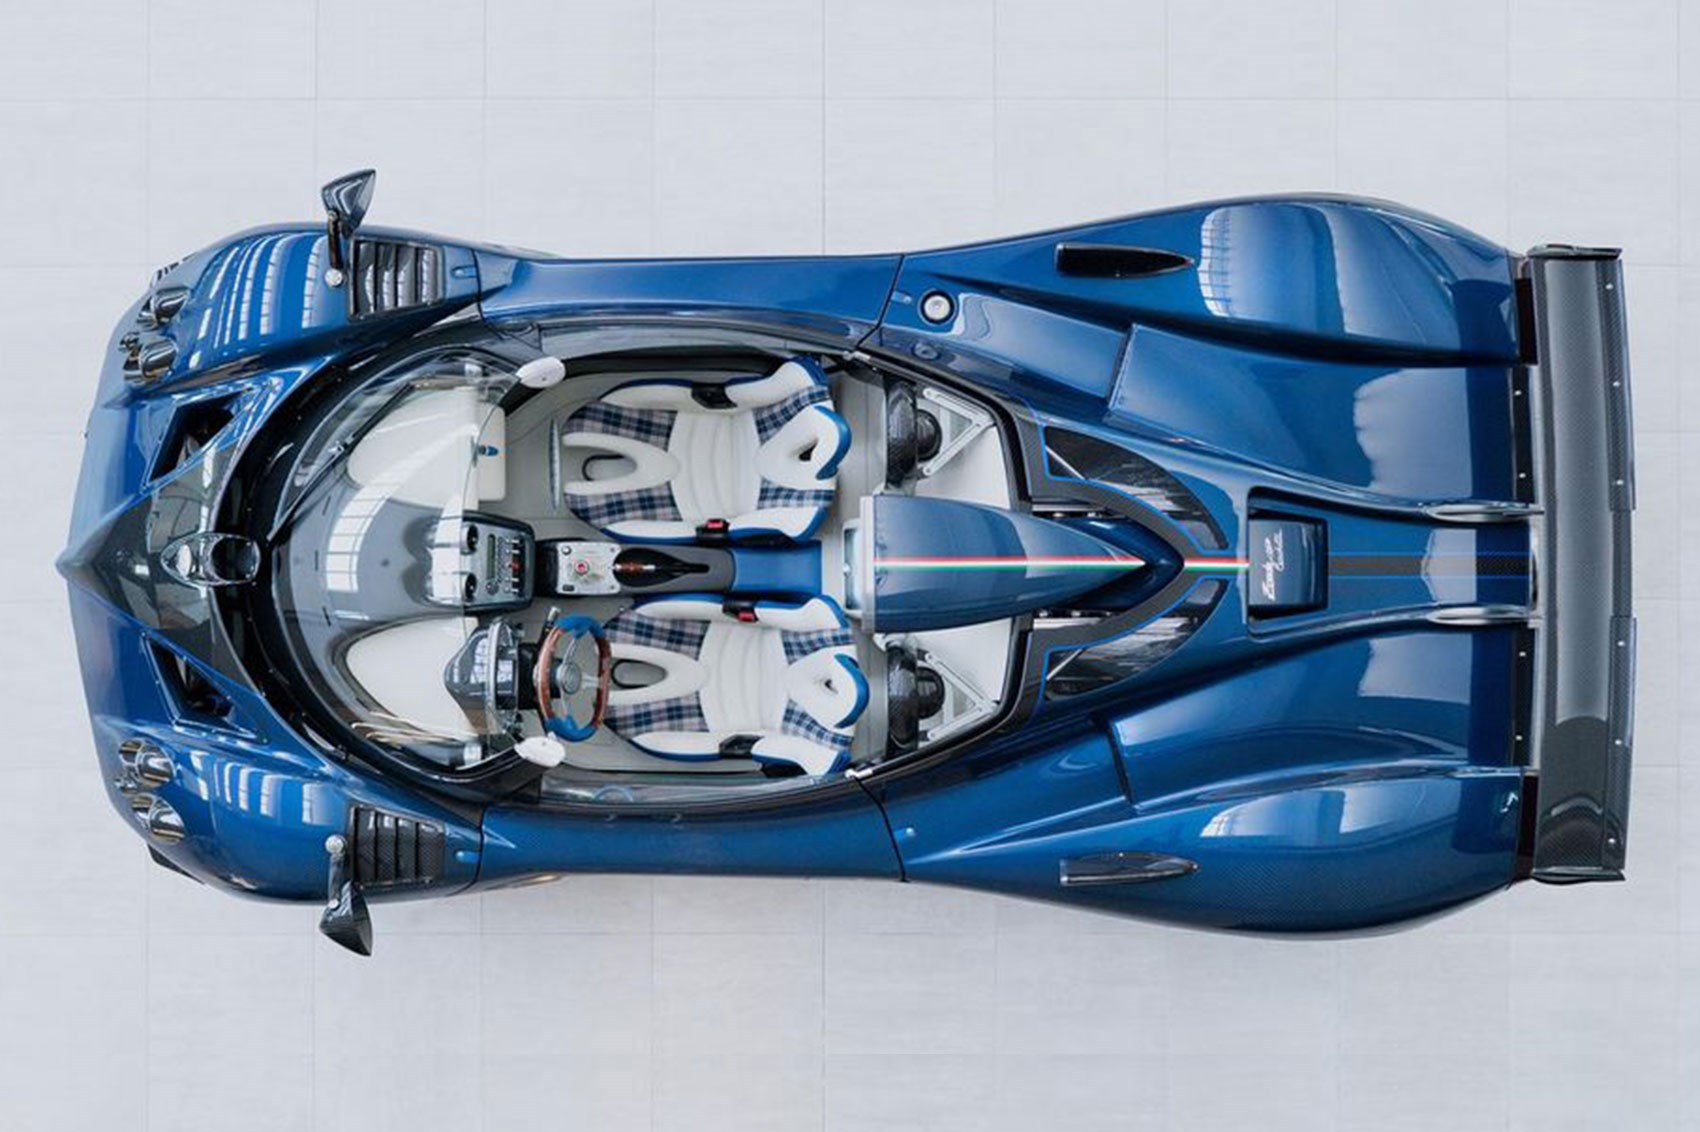 Pagani Zonda HP Barchetta is truly the Ultimate Zonda